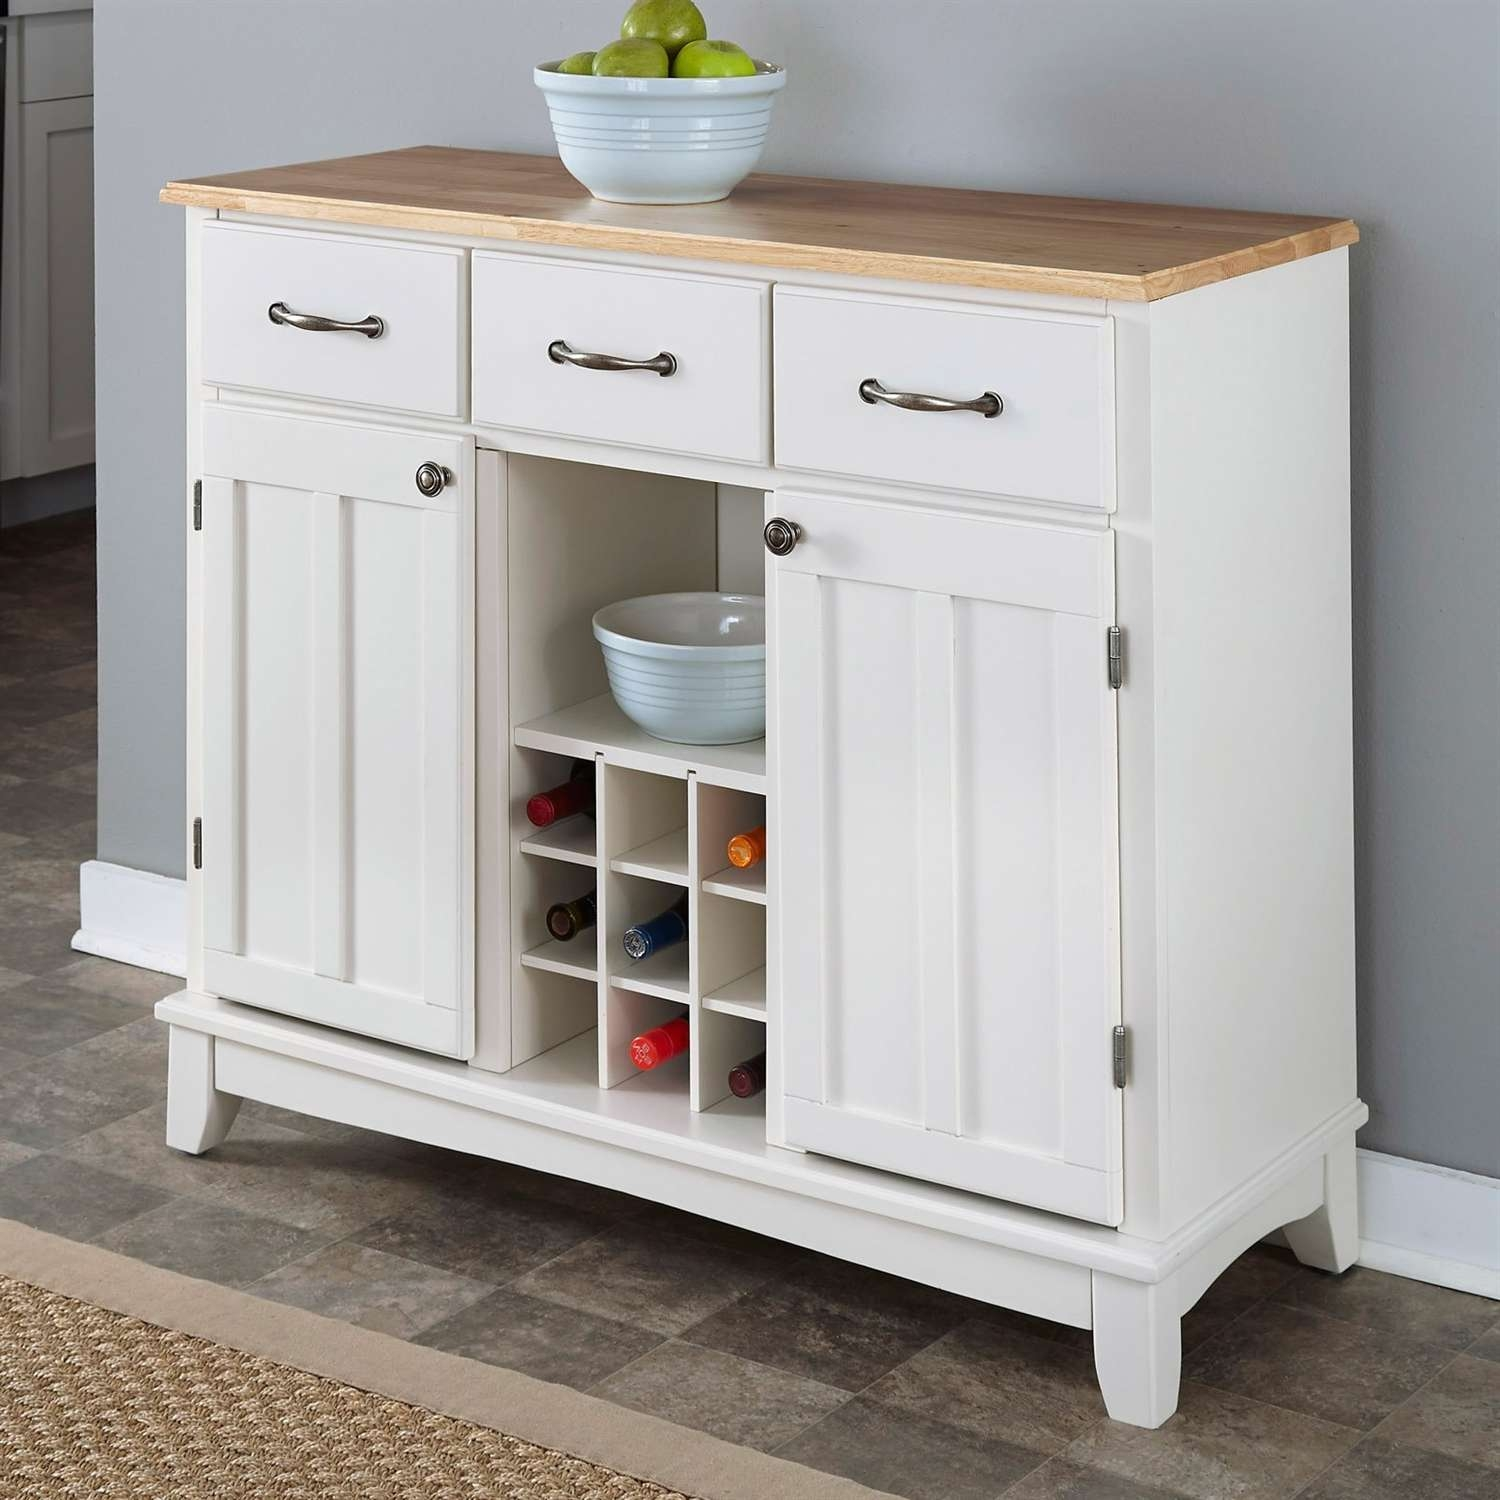 Sideboards & Buffets Throughout White Sideboards Cabinets (View 16 of 20)